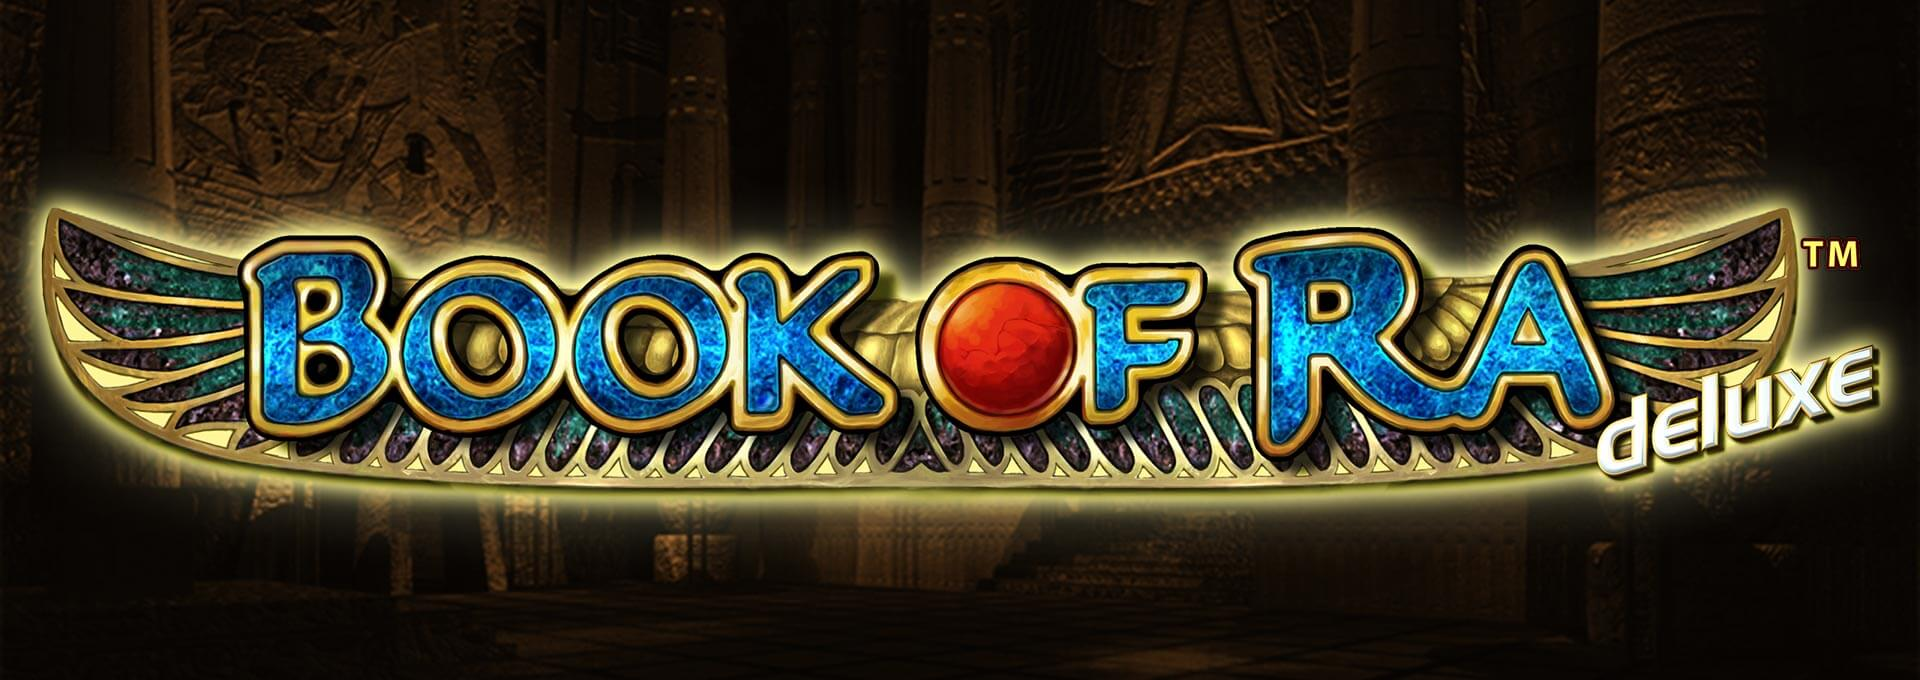 casino online deutschland casino book of ra